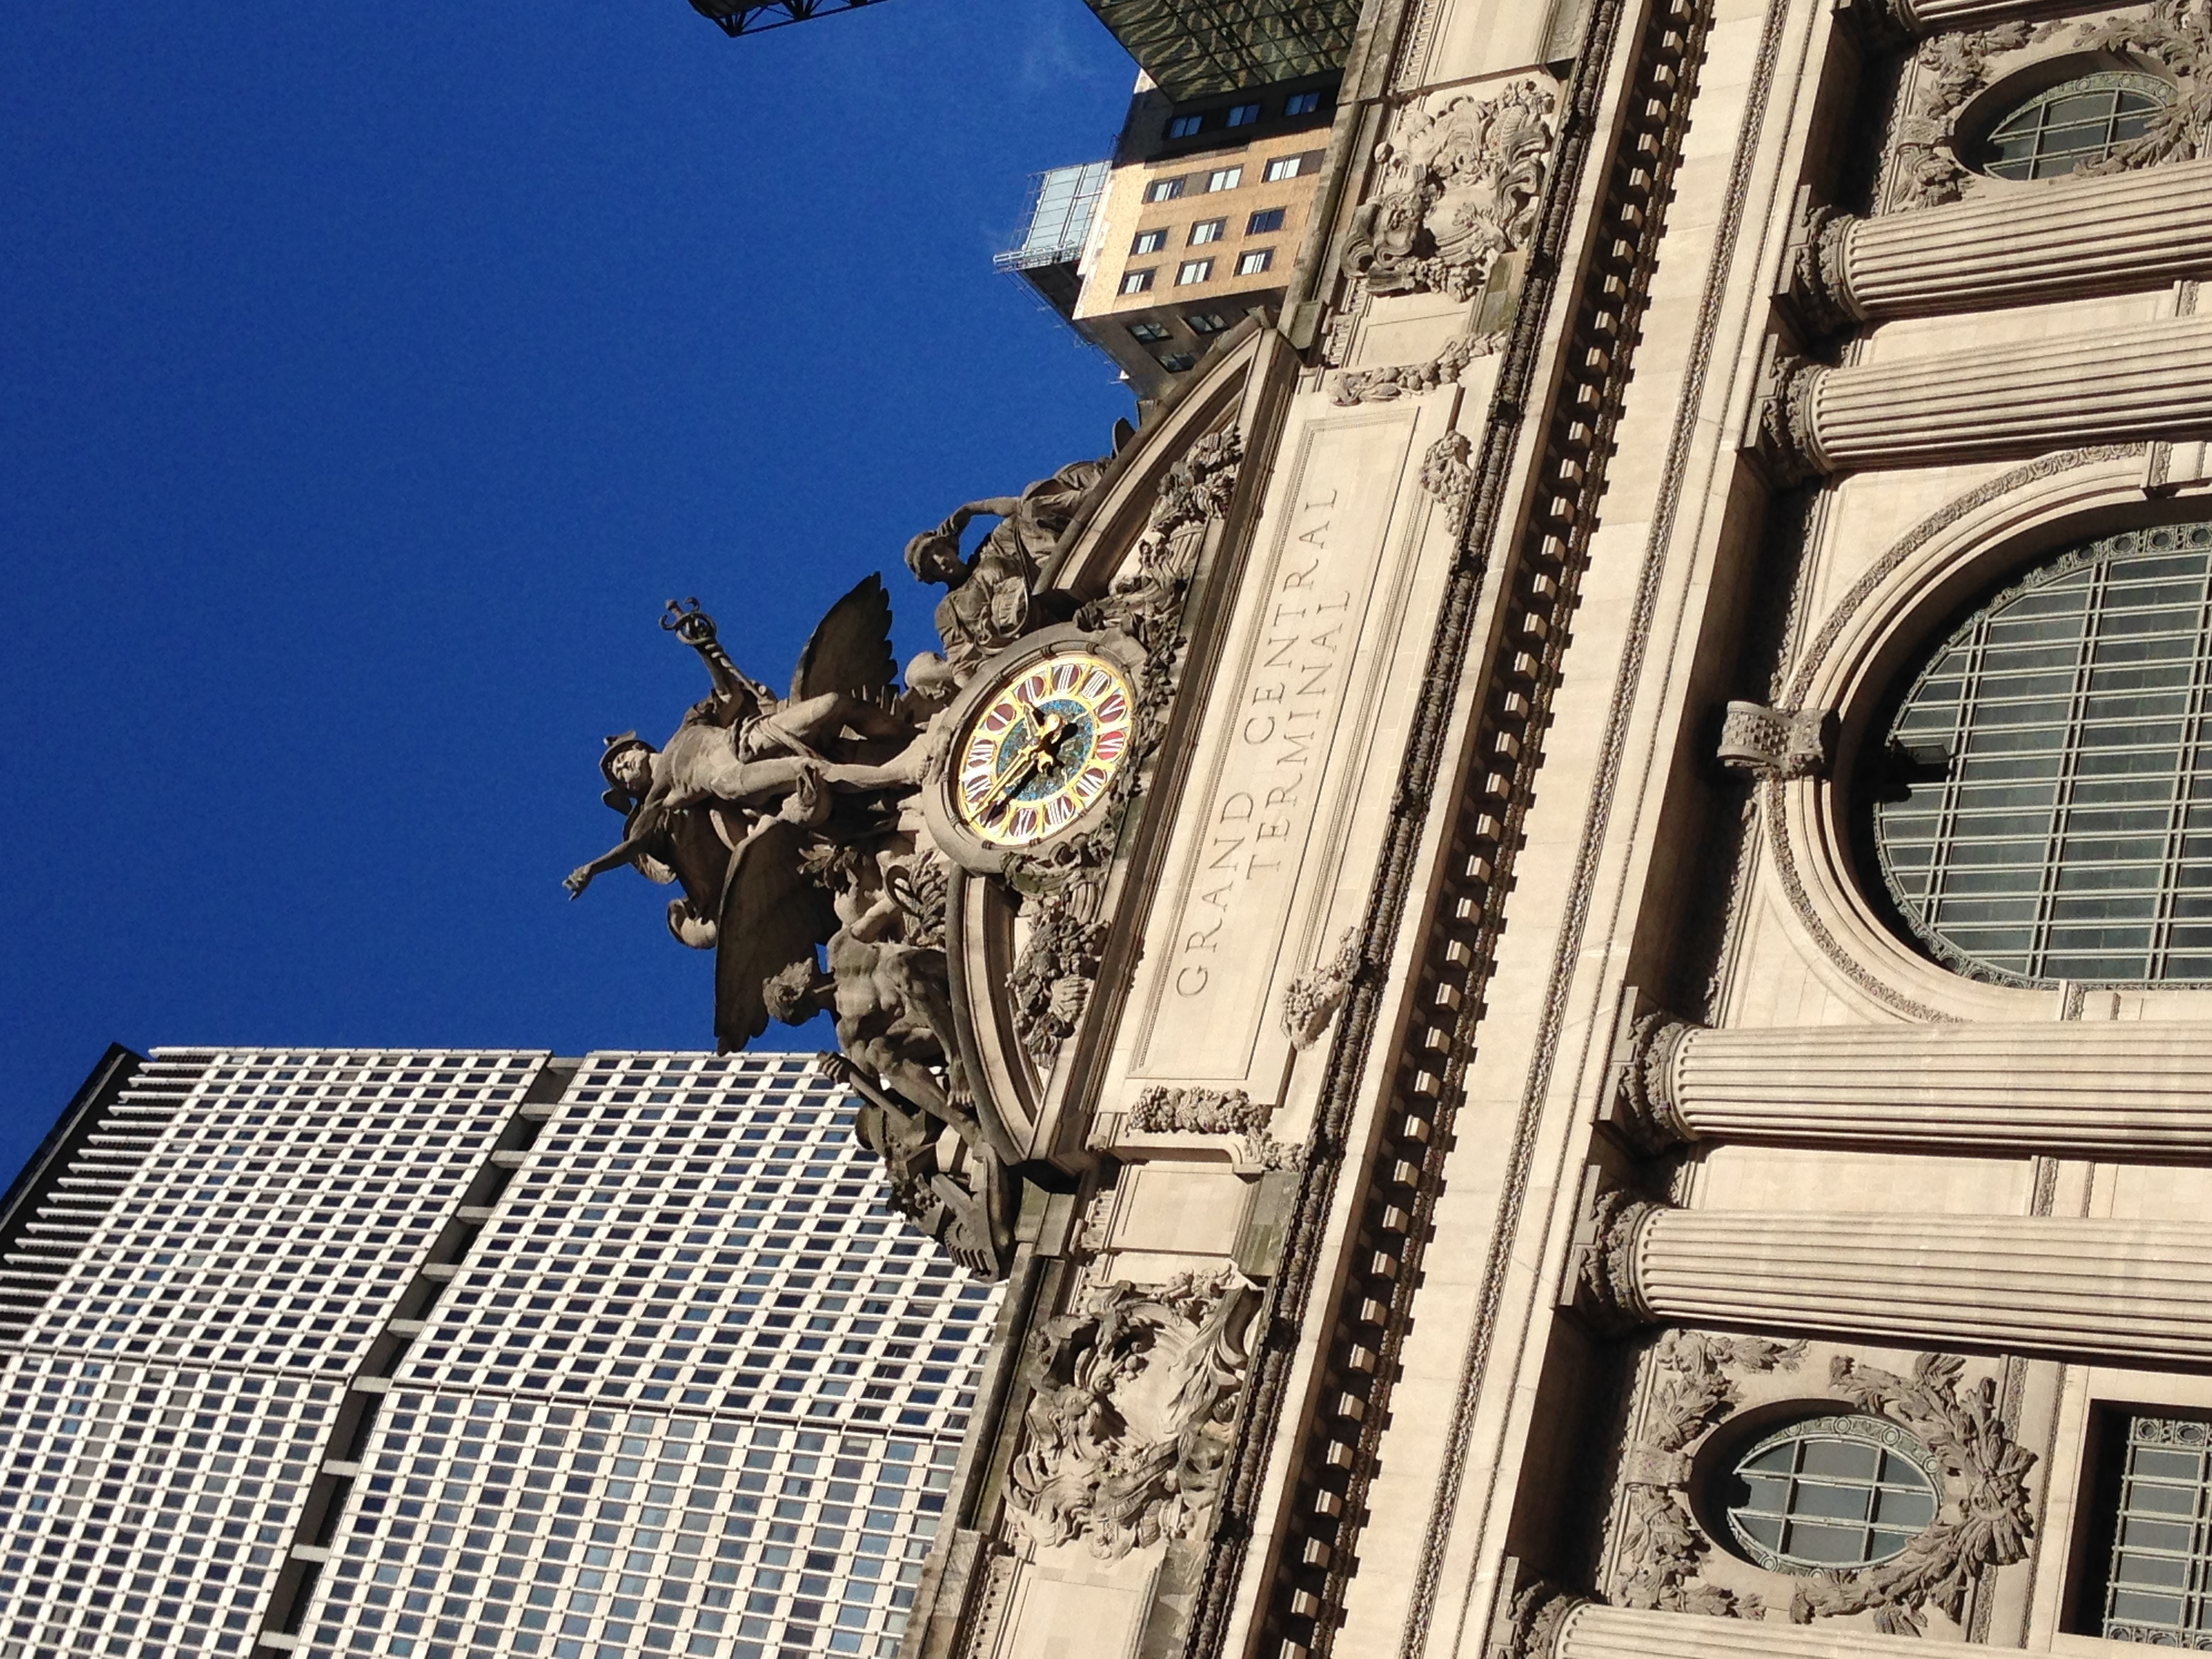 The Conference was right next to Grand Central Station.